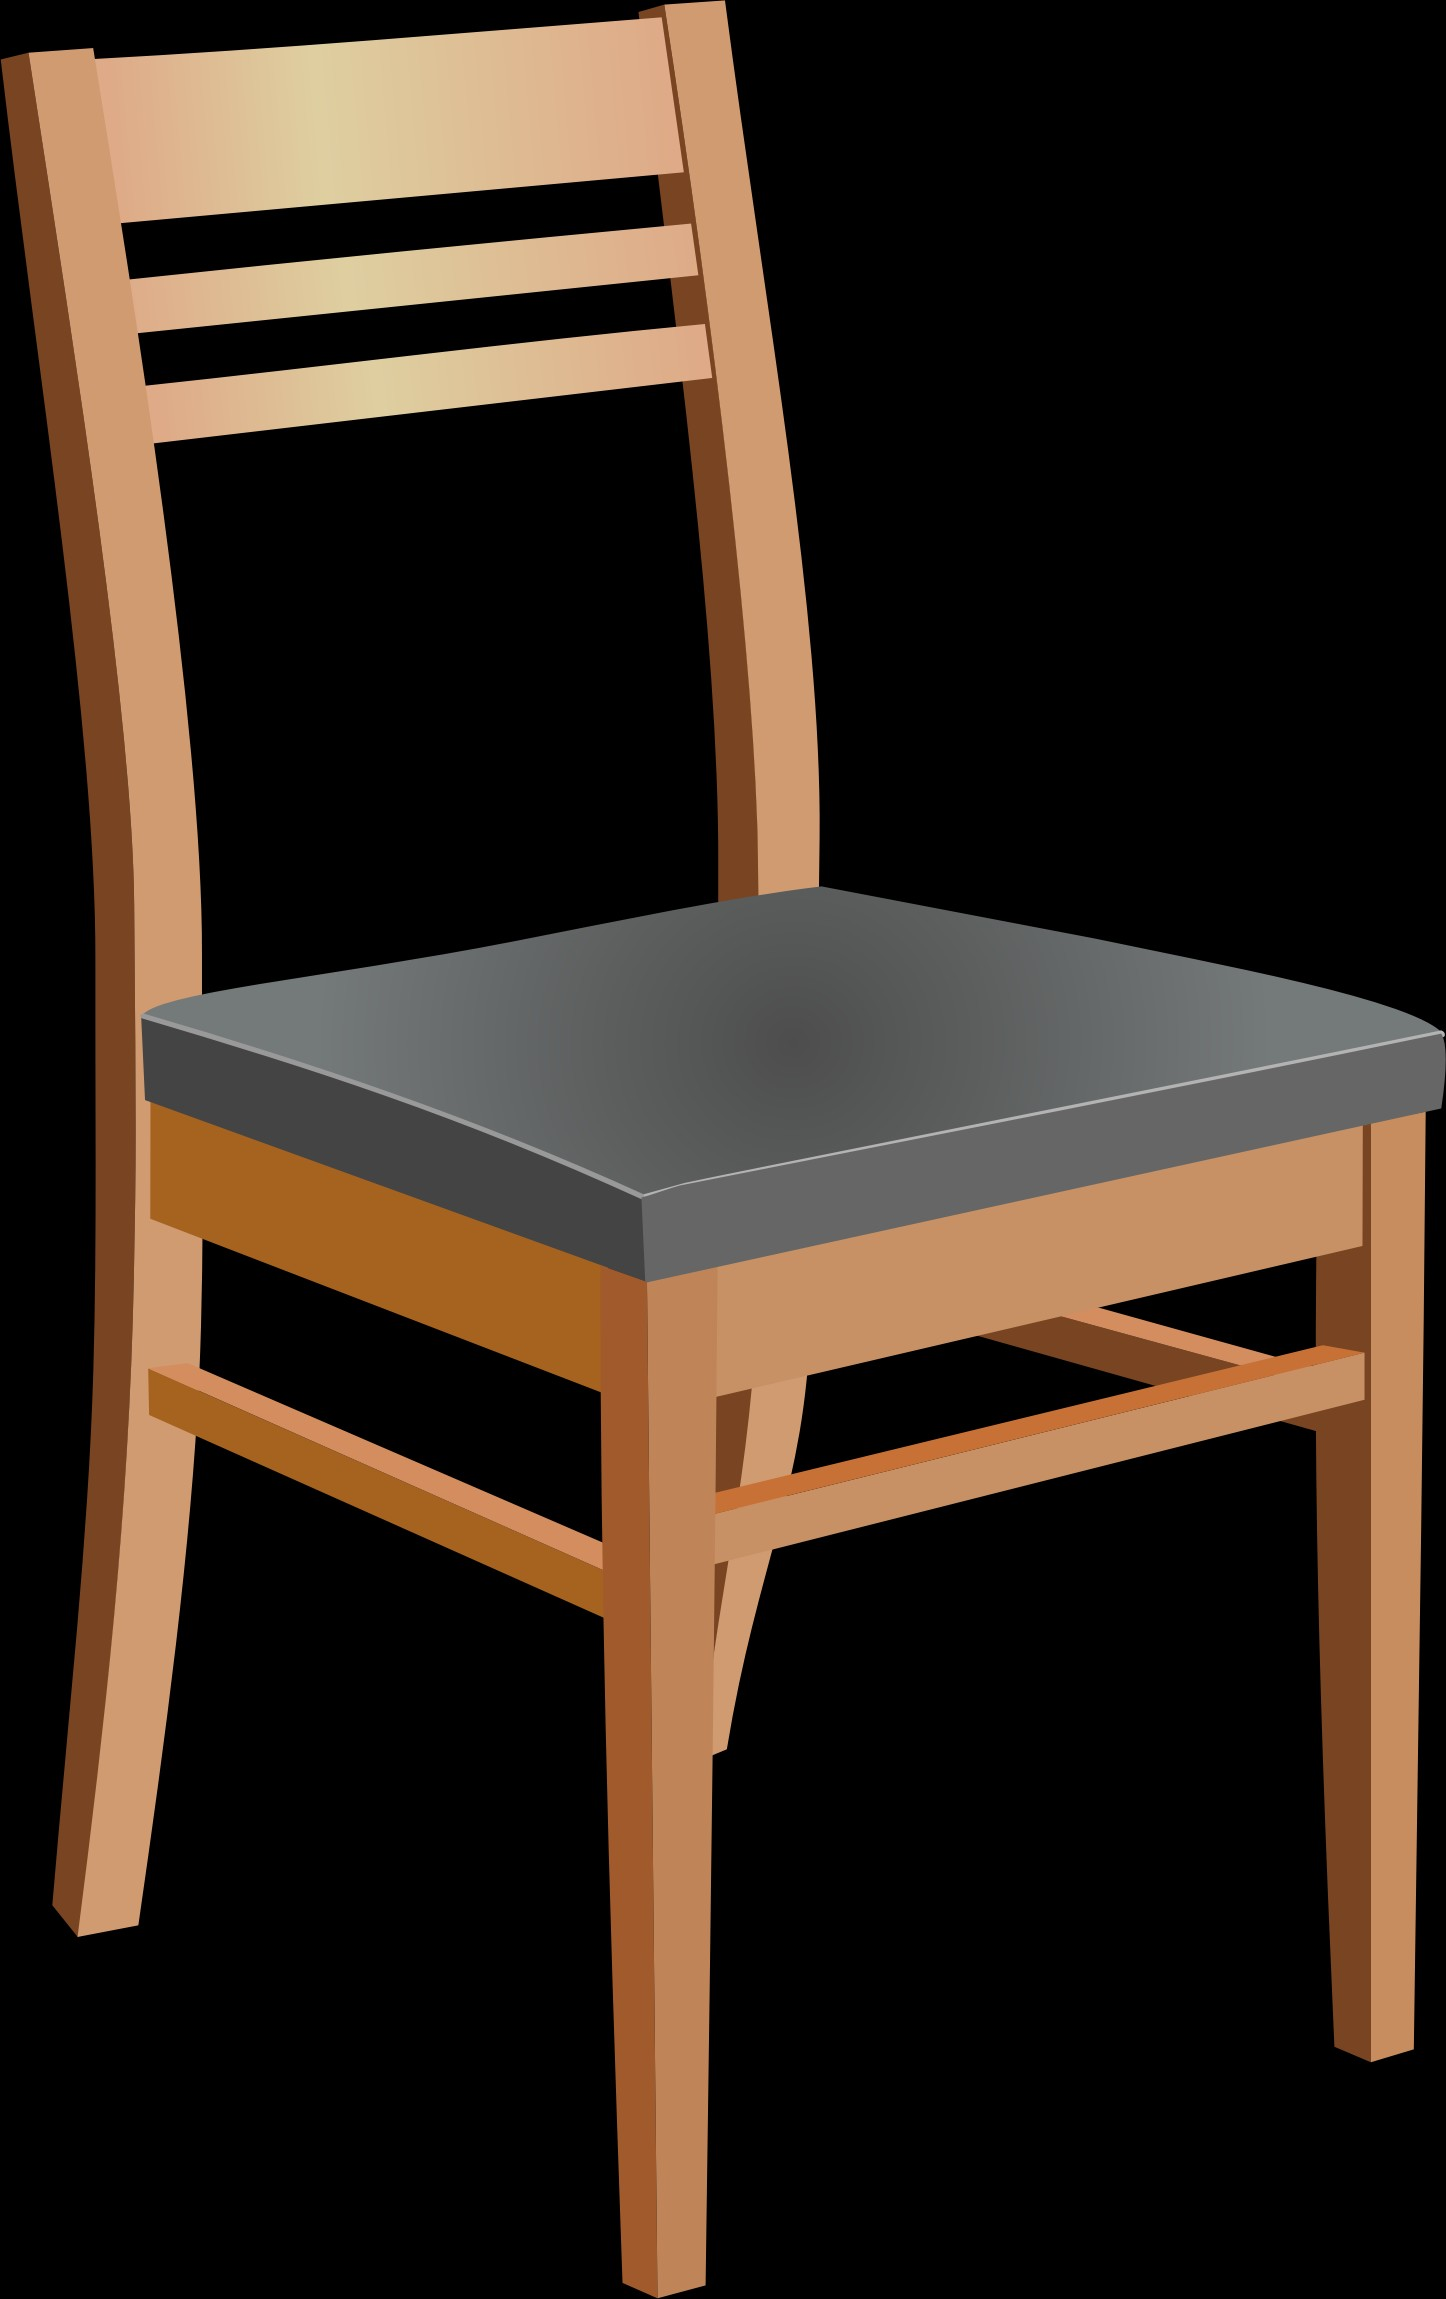 Chair series clipart 20 free Cliparts | Download images on ...